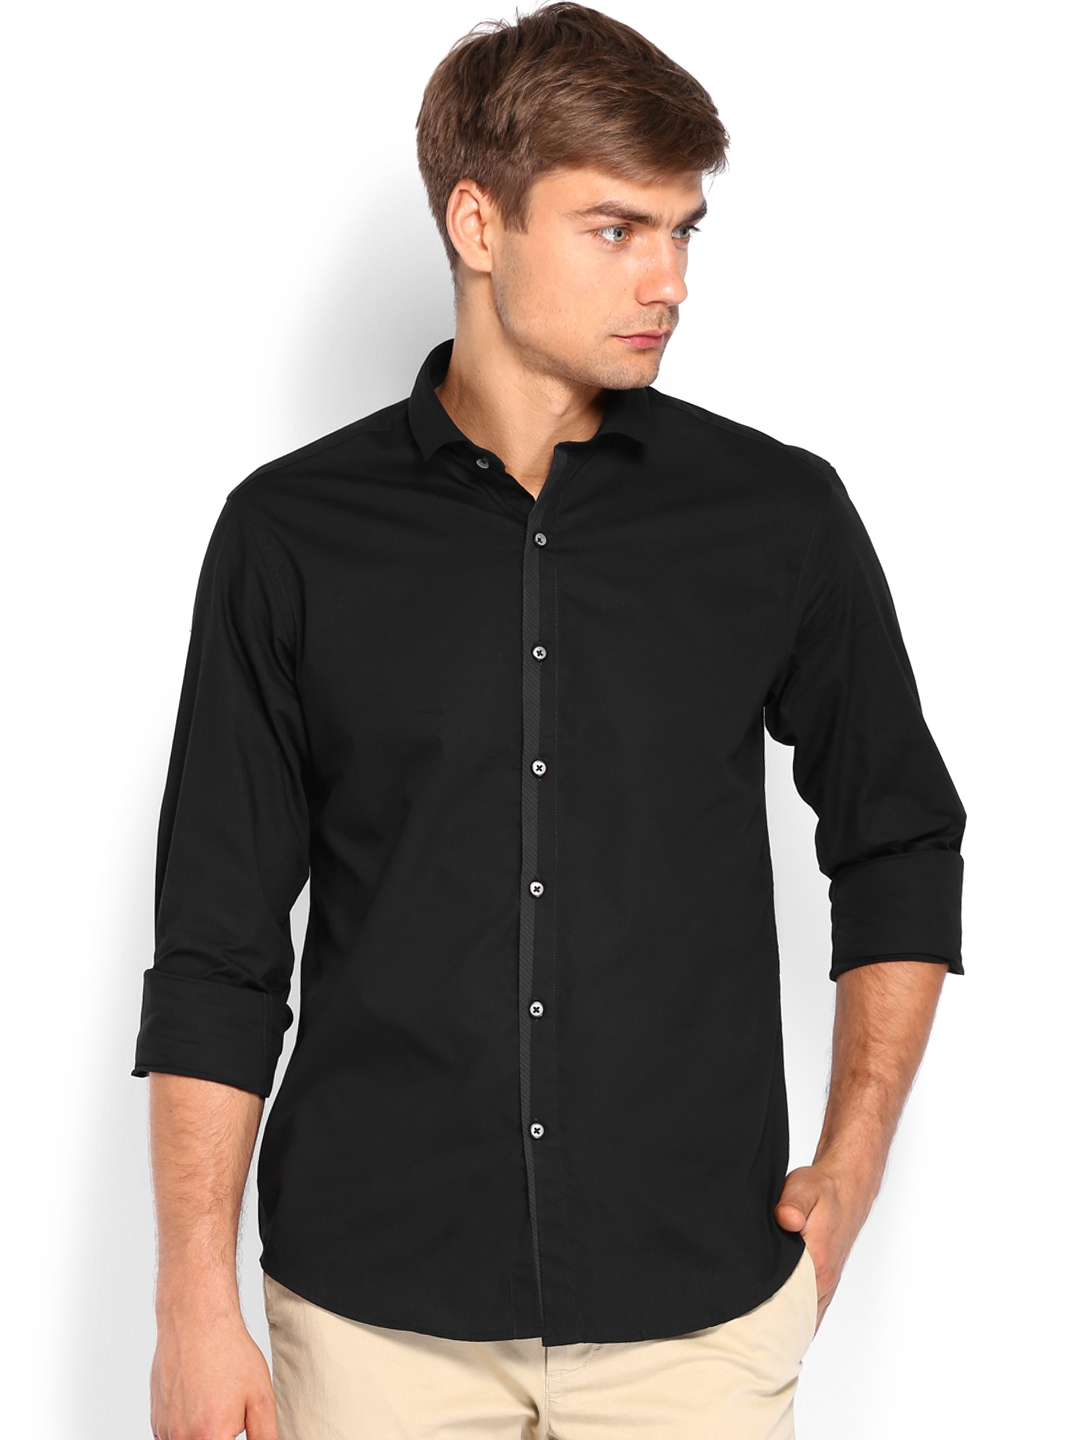 5 Best Smart Casual Menswear Combinations. Sweatshirt and Shirt – Match the jumper with a crisp dress or oxford shirt to nail the smart casual style. Smart casual is easy to grasp with just a few simple pieces So, the men's smart casual dress style isn't too tricky after all, and with so many combinations, there's no excuse for.